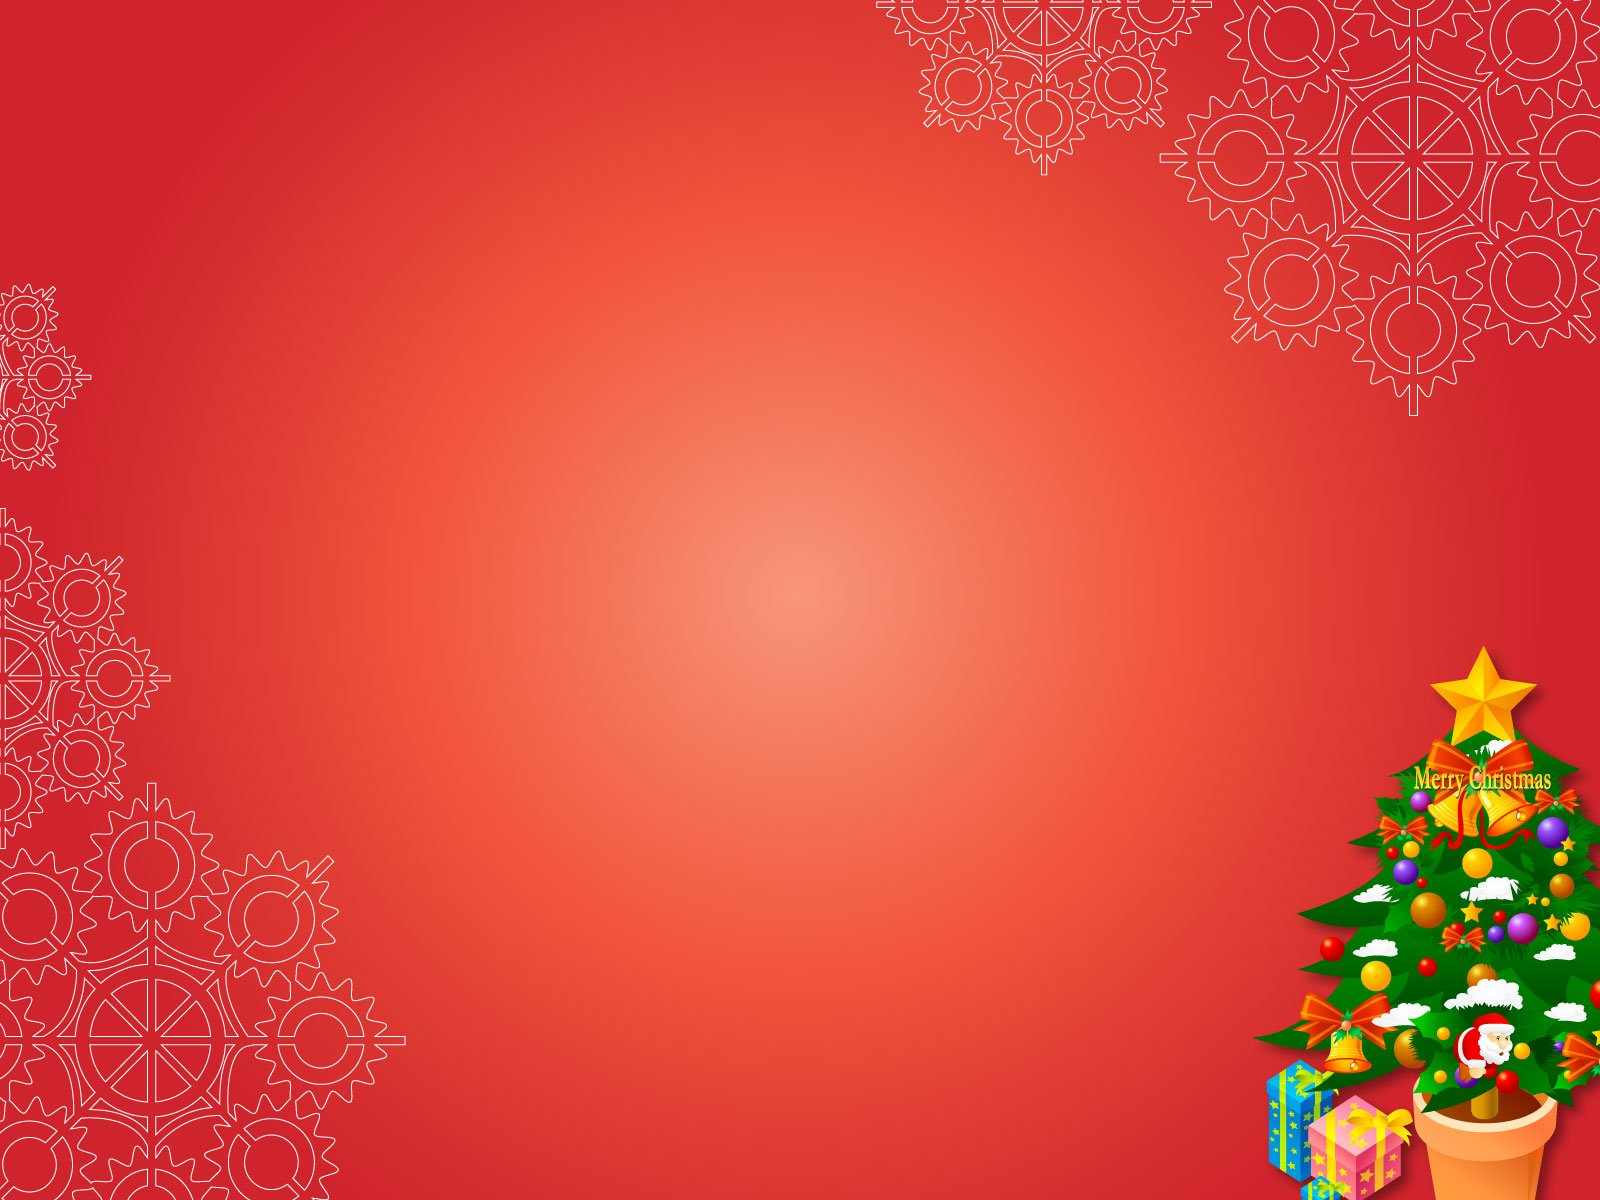 Labels: Christmas Backgrounds , Christmas Decor , Christmas Wallpapers